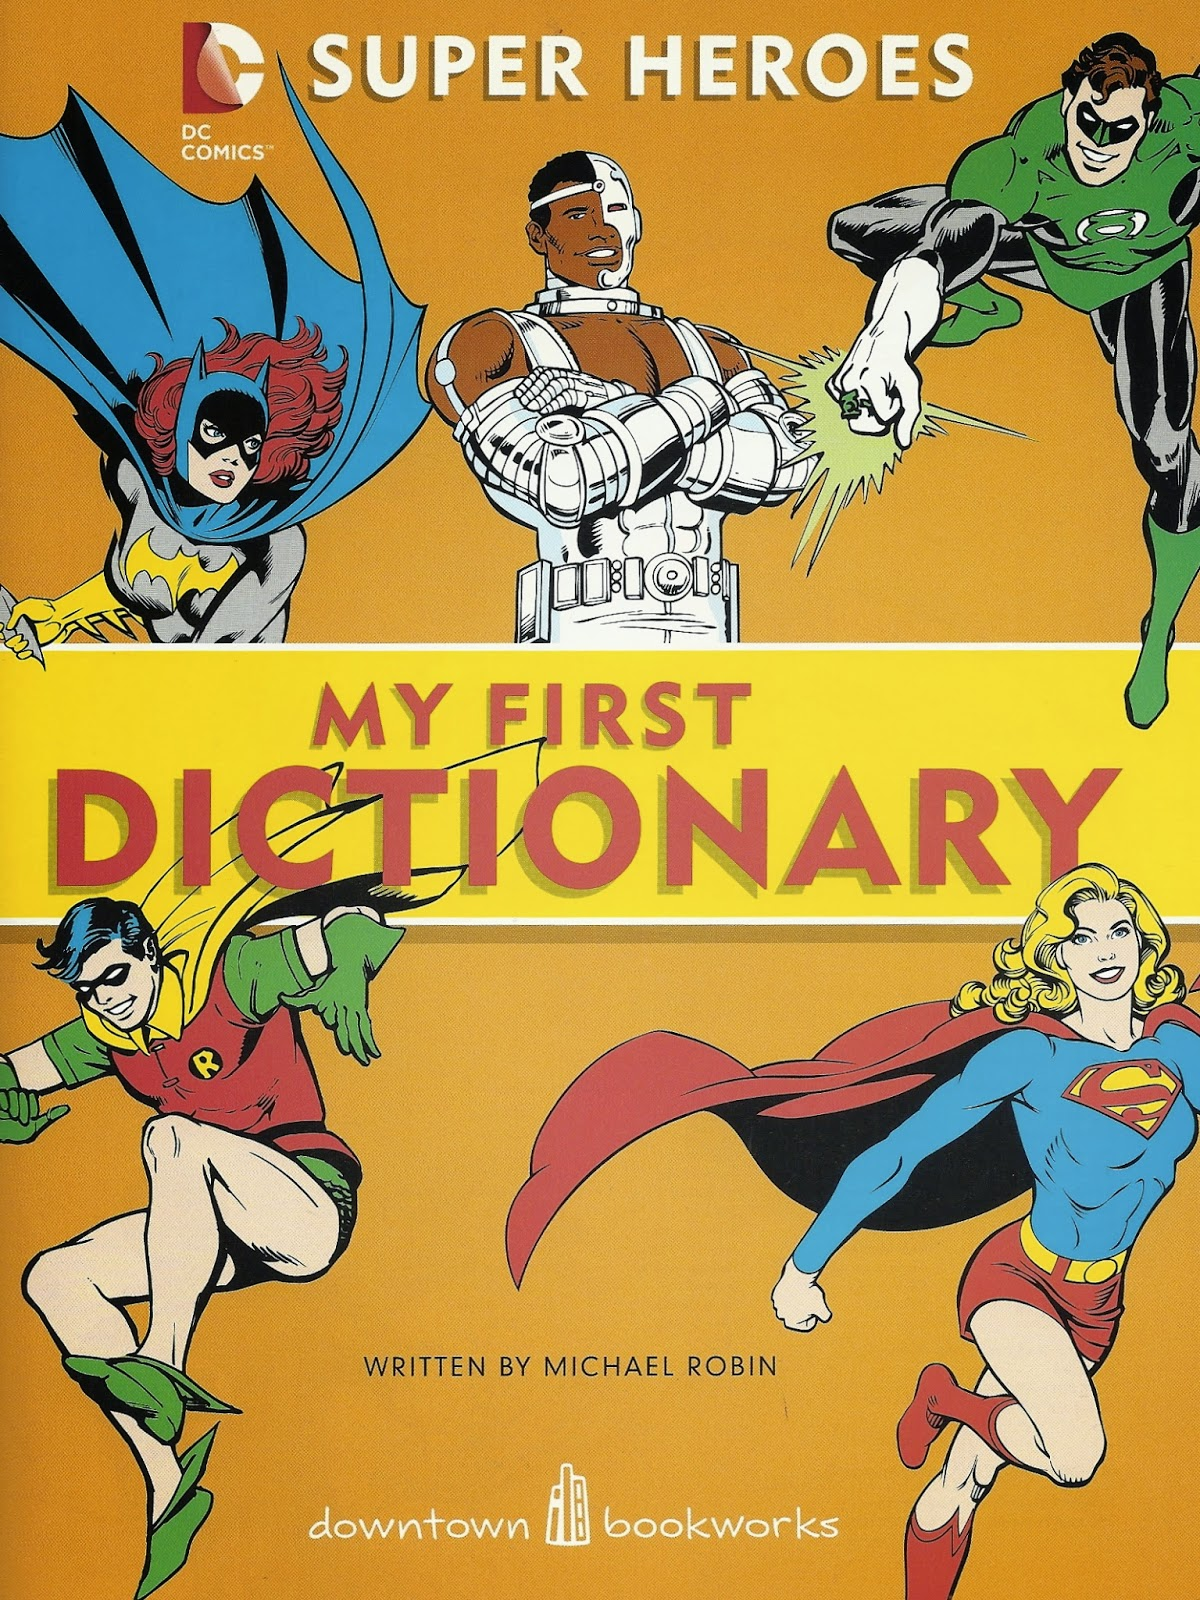 Every Day Is Like Wednesday: More on Super Heroes: My First